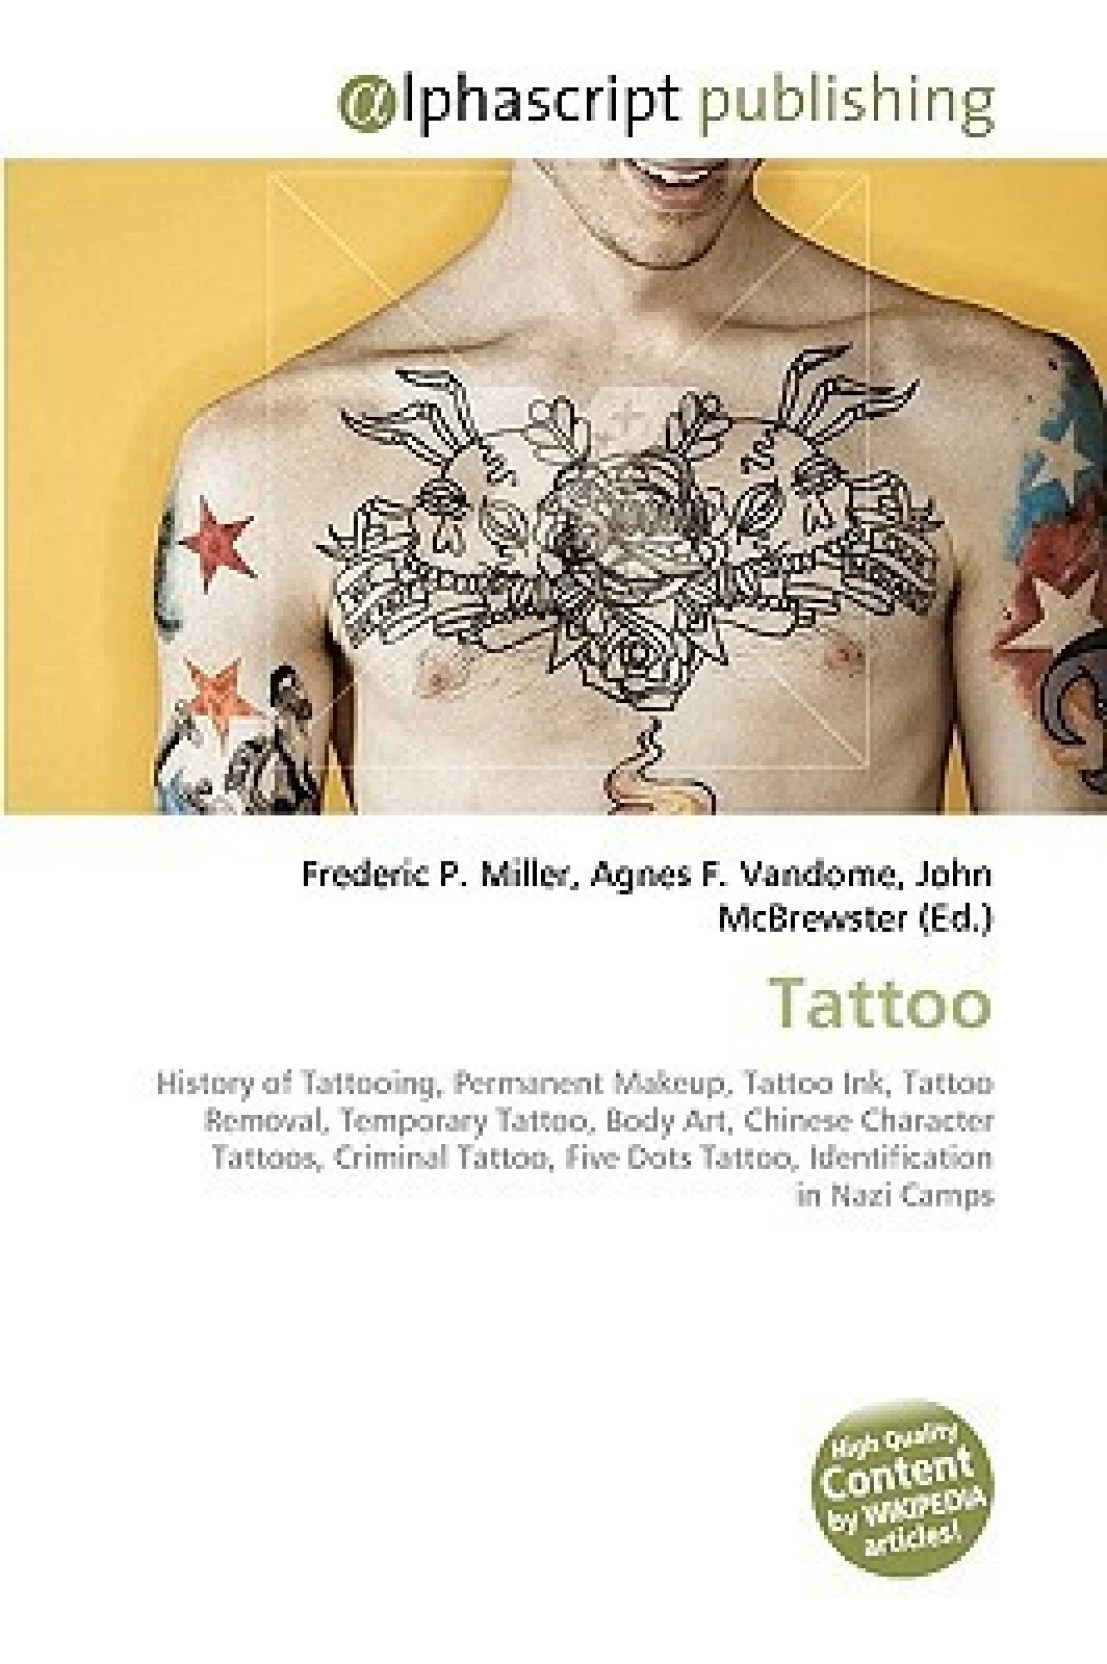 small resolution of tattoo history of tattooing permanent makeup tattoo ink tattoo removal temporary tattoo body art chinese character tattoos criminal tattoo